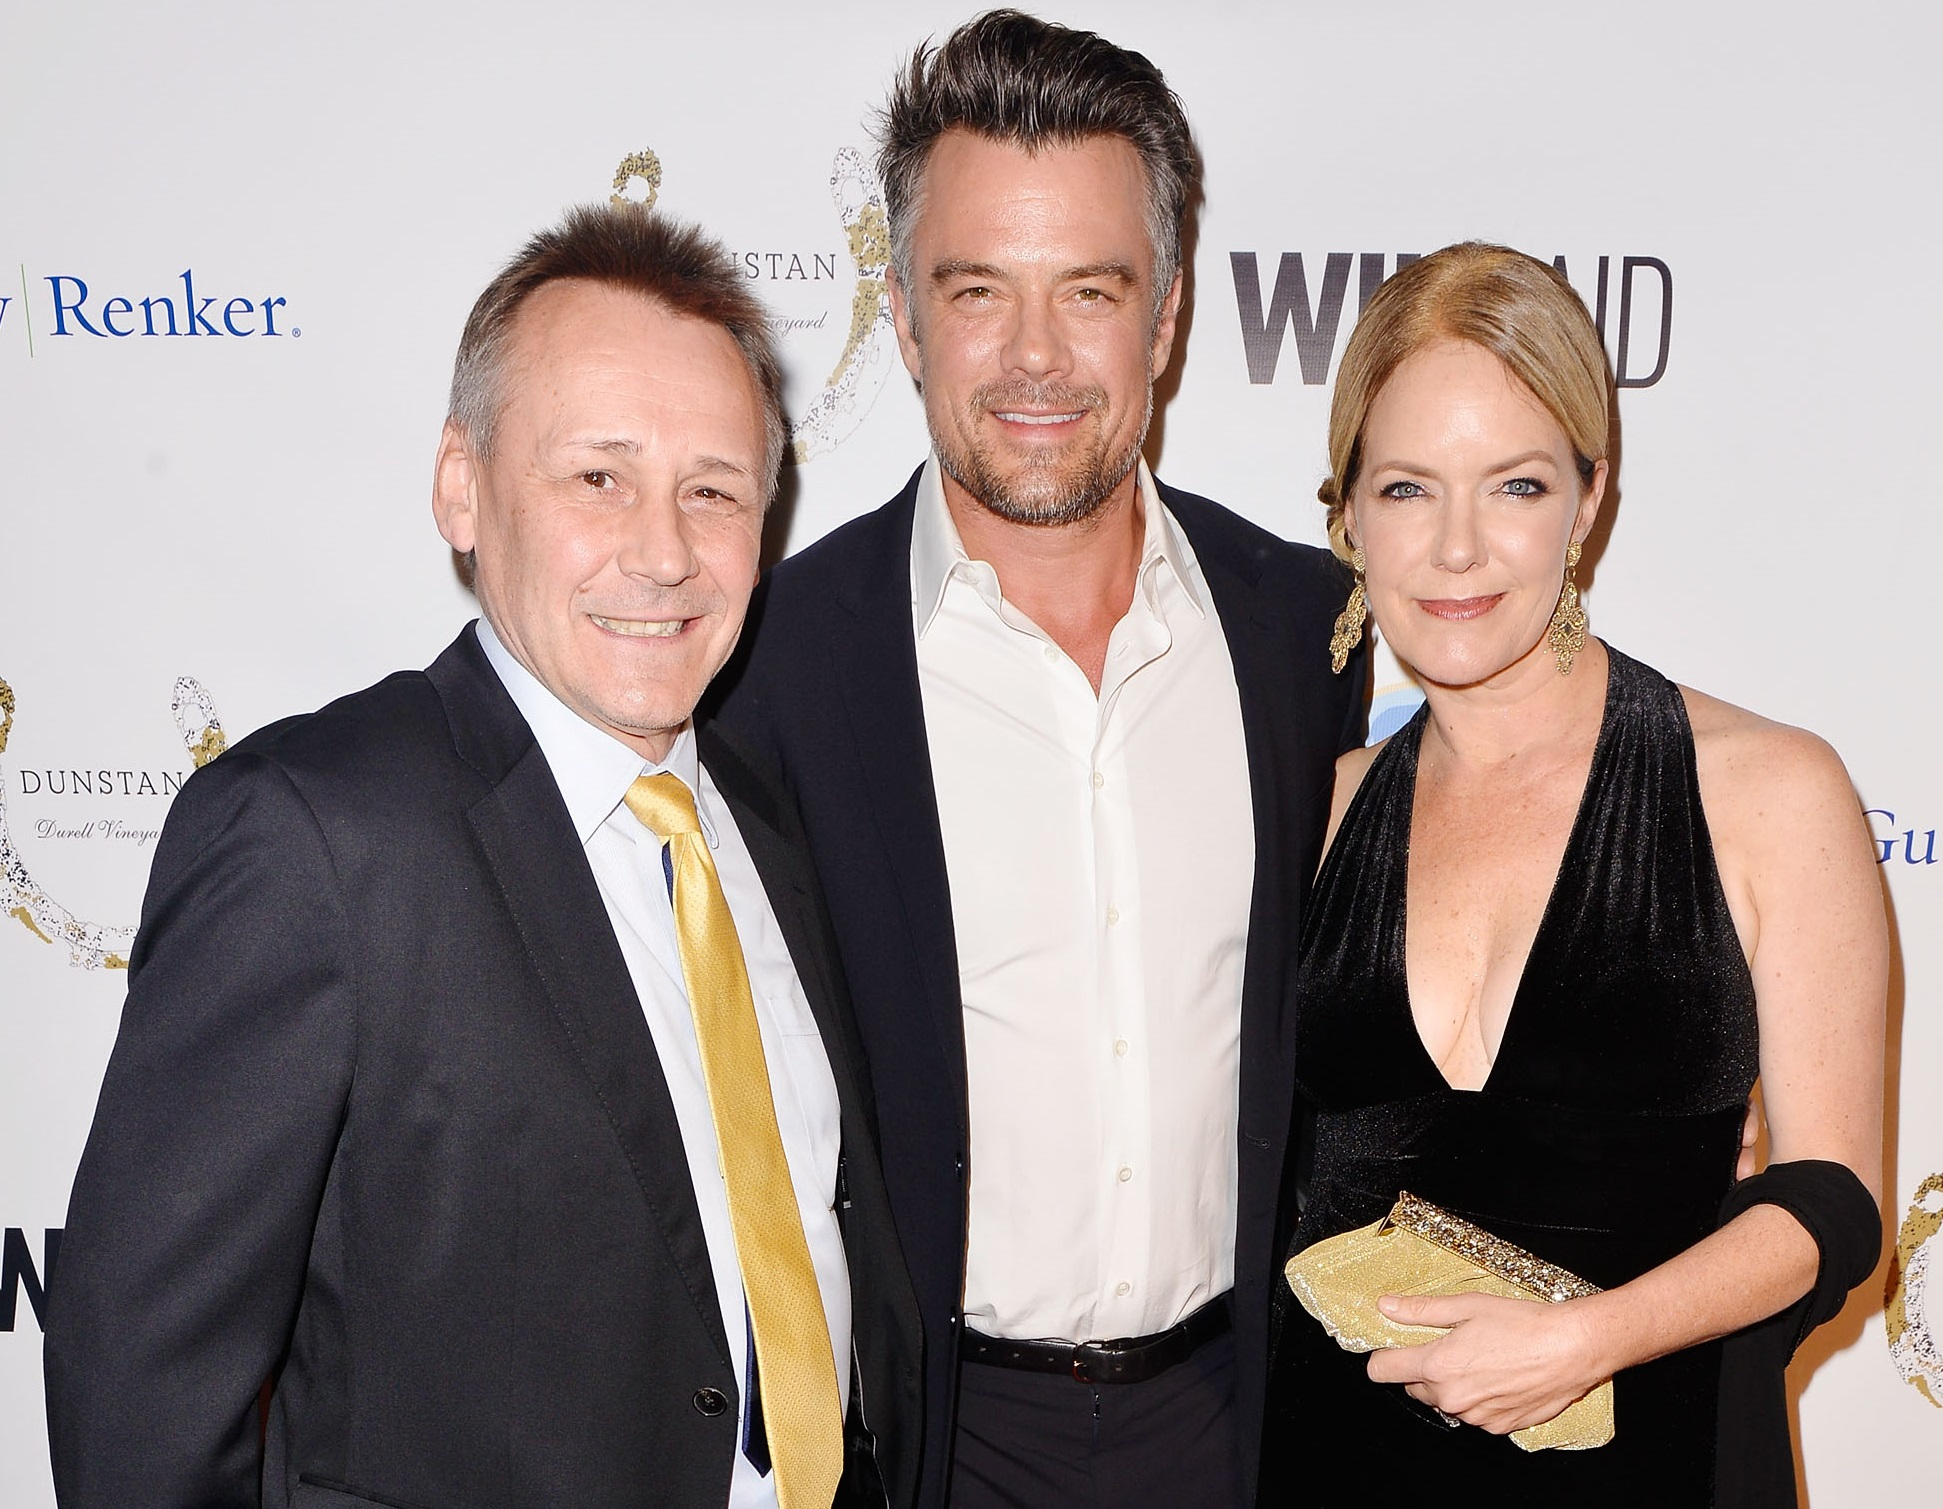 WildAid CEO Peter Knights, Josh Duhamel, Corie Knights